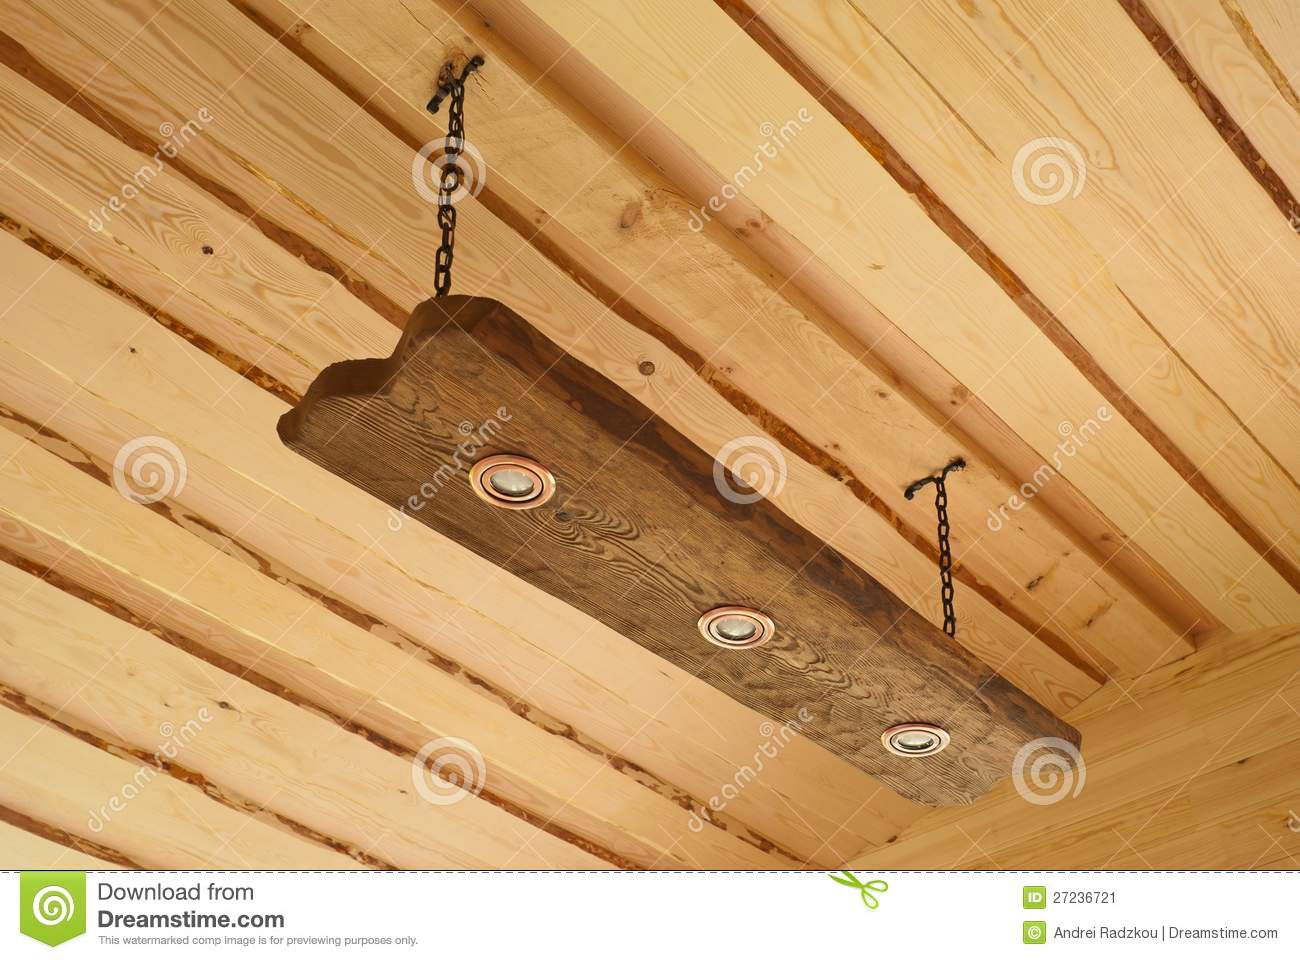 wooden ceiling lamp stock image image of oaken original 27236721. Black Bedroom Furniture Sets. Home Design Ideas